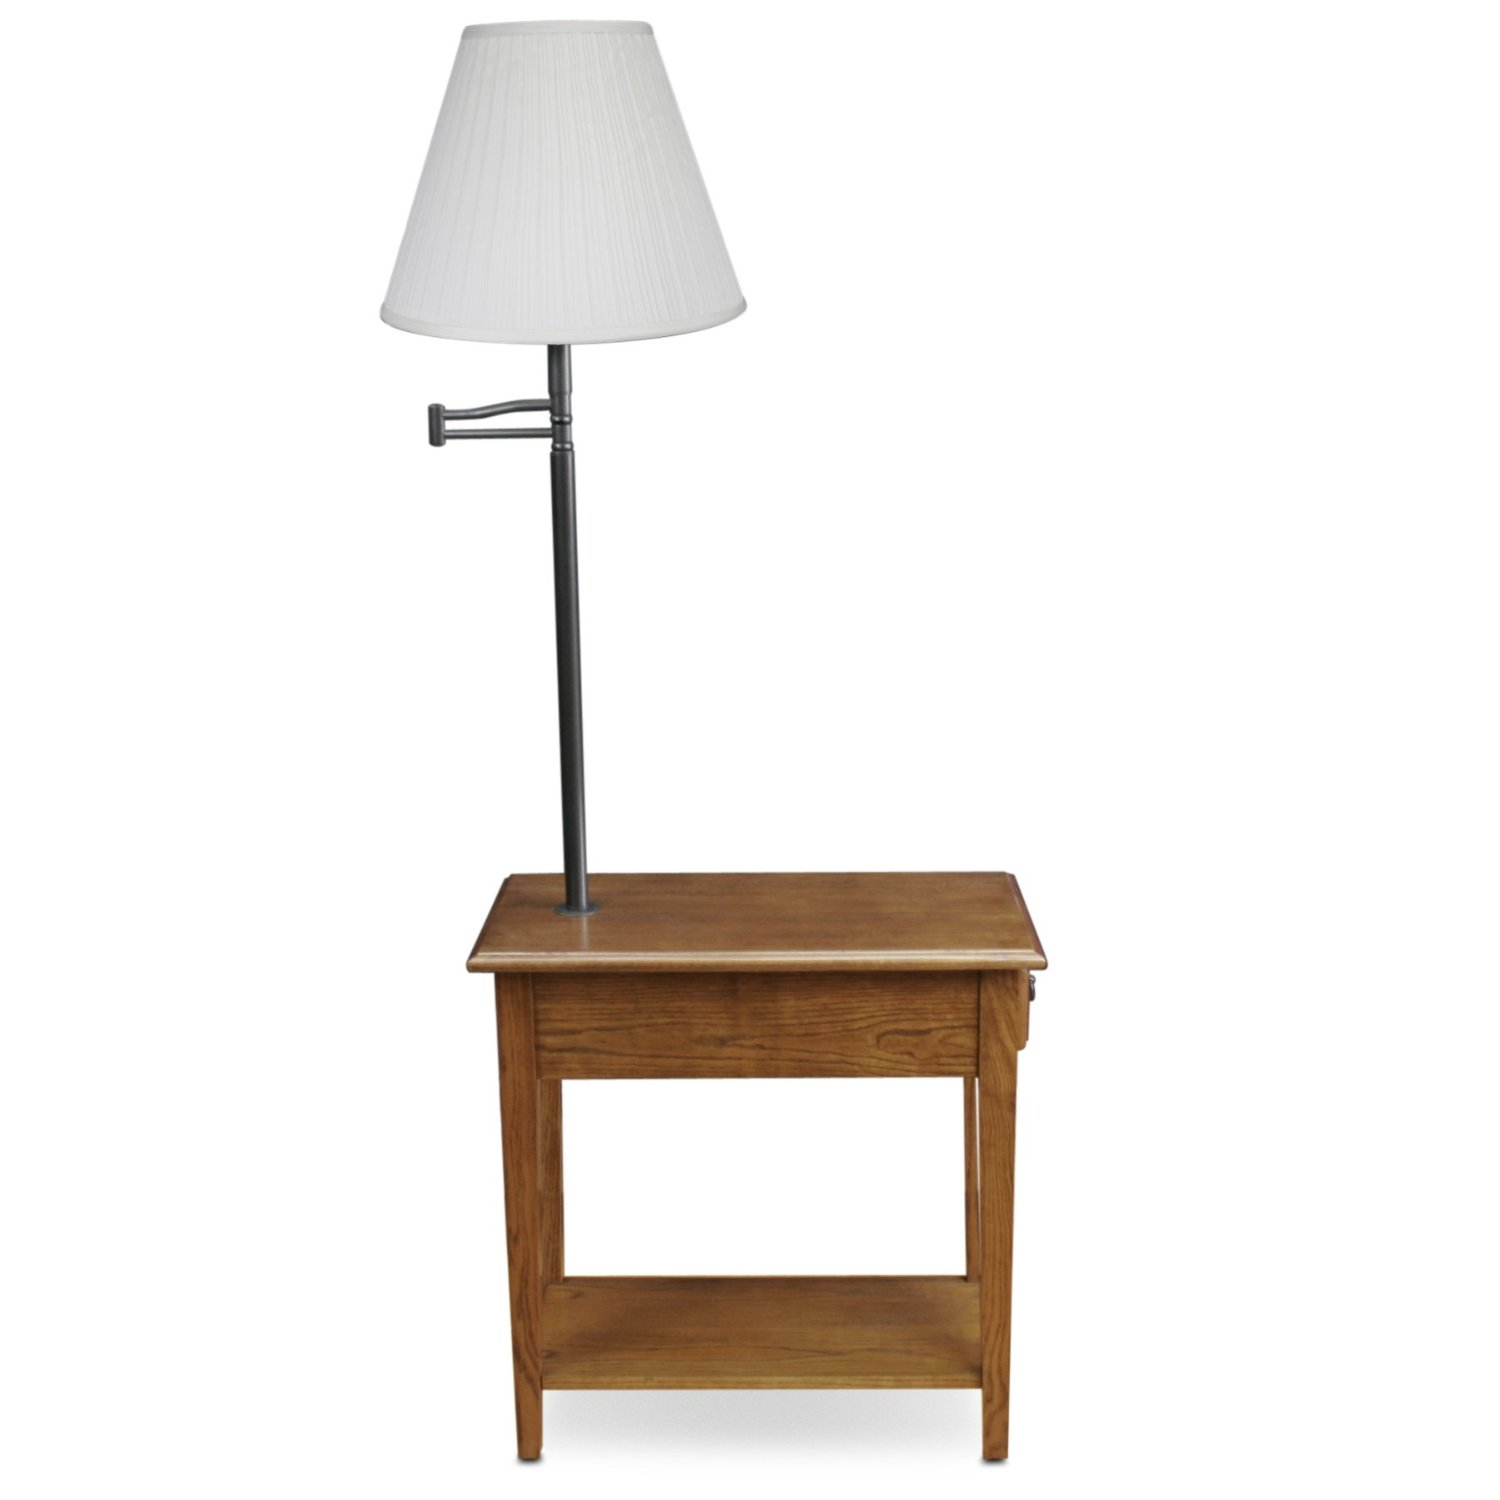 lamp table with magazine rack lamps end built traditional living room light wood tables accent full size home goods dressers small white entry ceiling curtain rod very garden